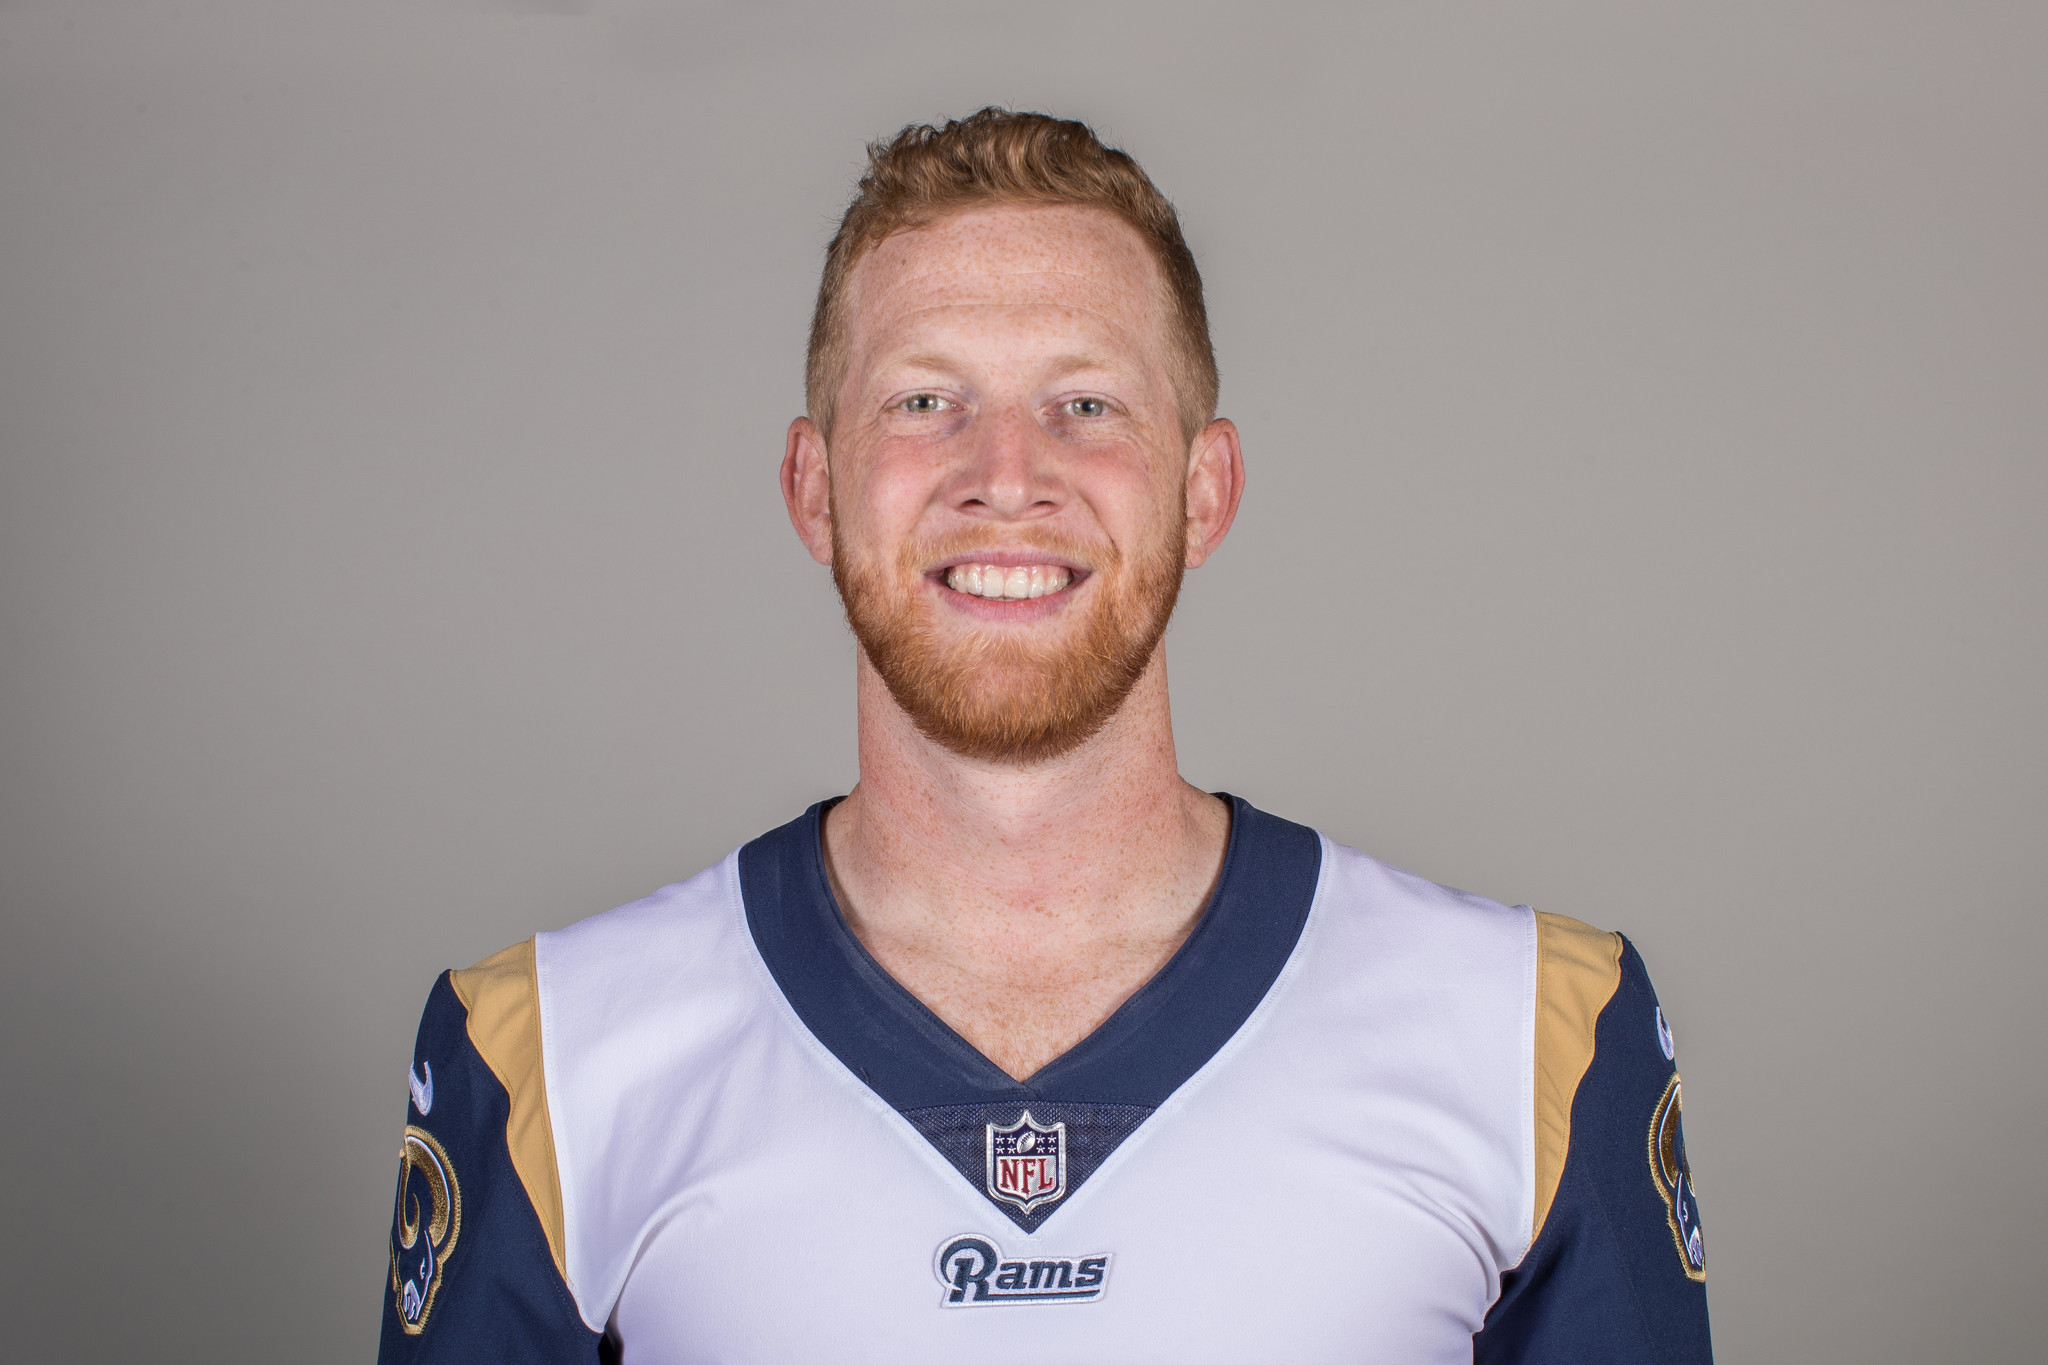 Headshot of punter (6) Johnny Hekker of the Los Angeles Rams, Thursday, June 11, 2018, in Thousand O